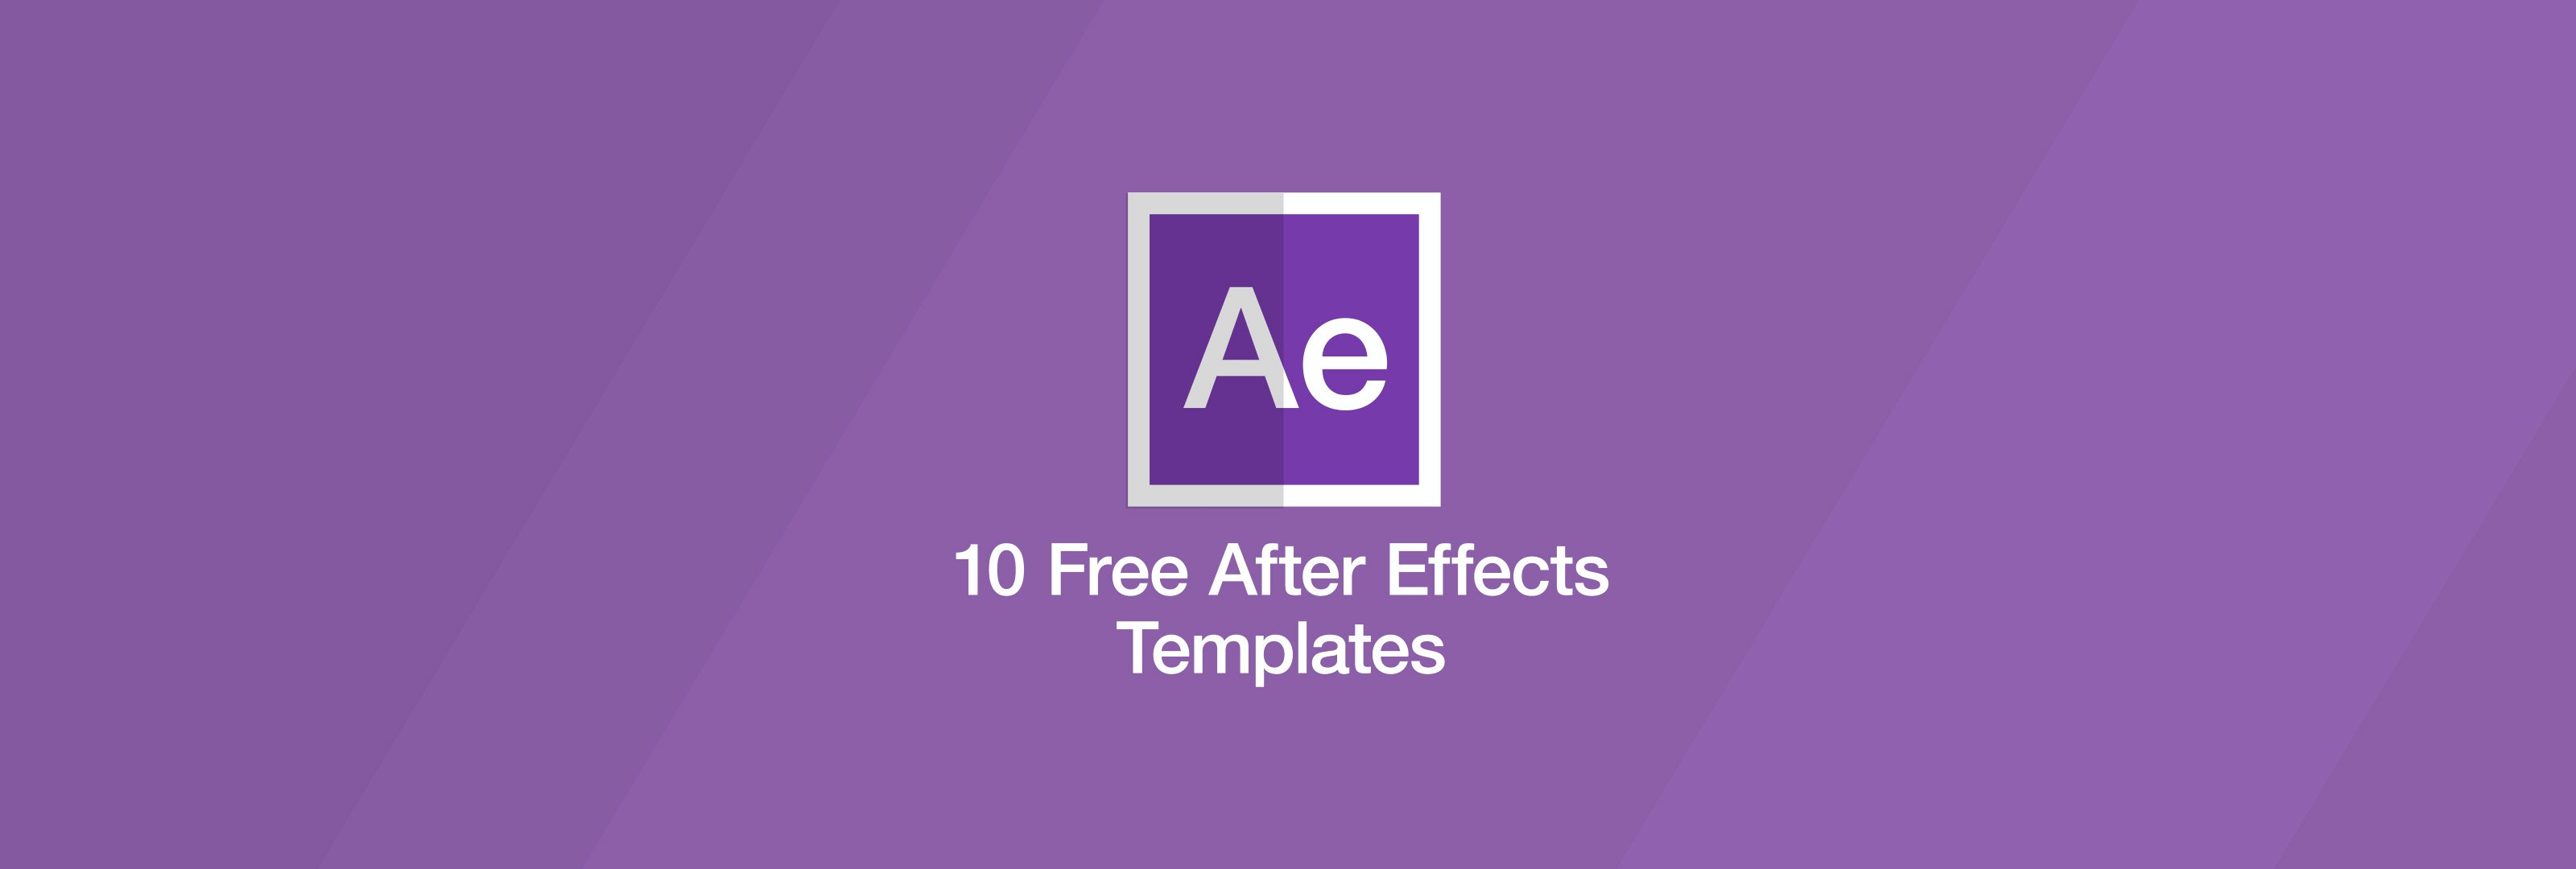 10 free after effects templates